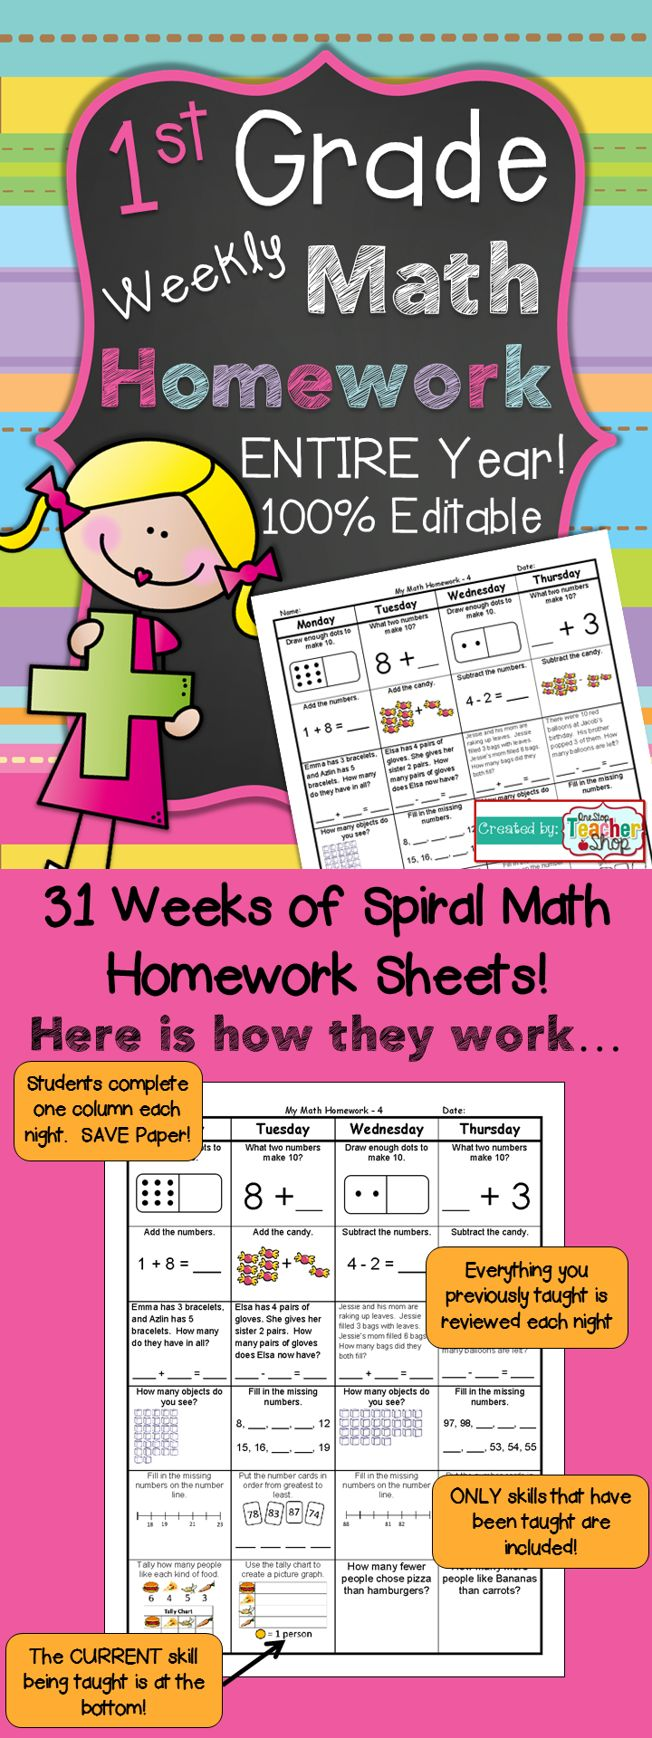 ENTIRE YEAR of 1st Grade Common Core Spiral Math Homework! 100% Editable - with Answer Keys!!! Paid